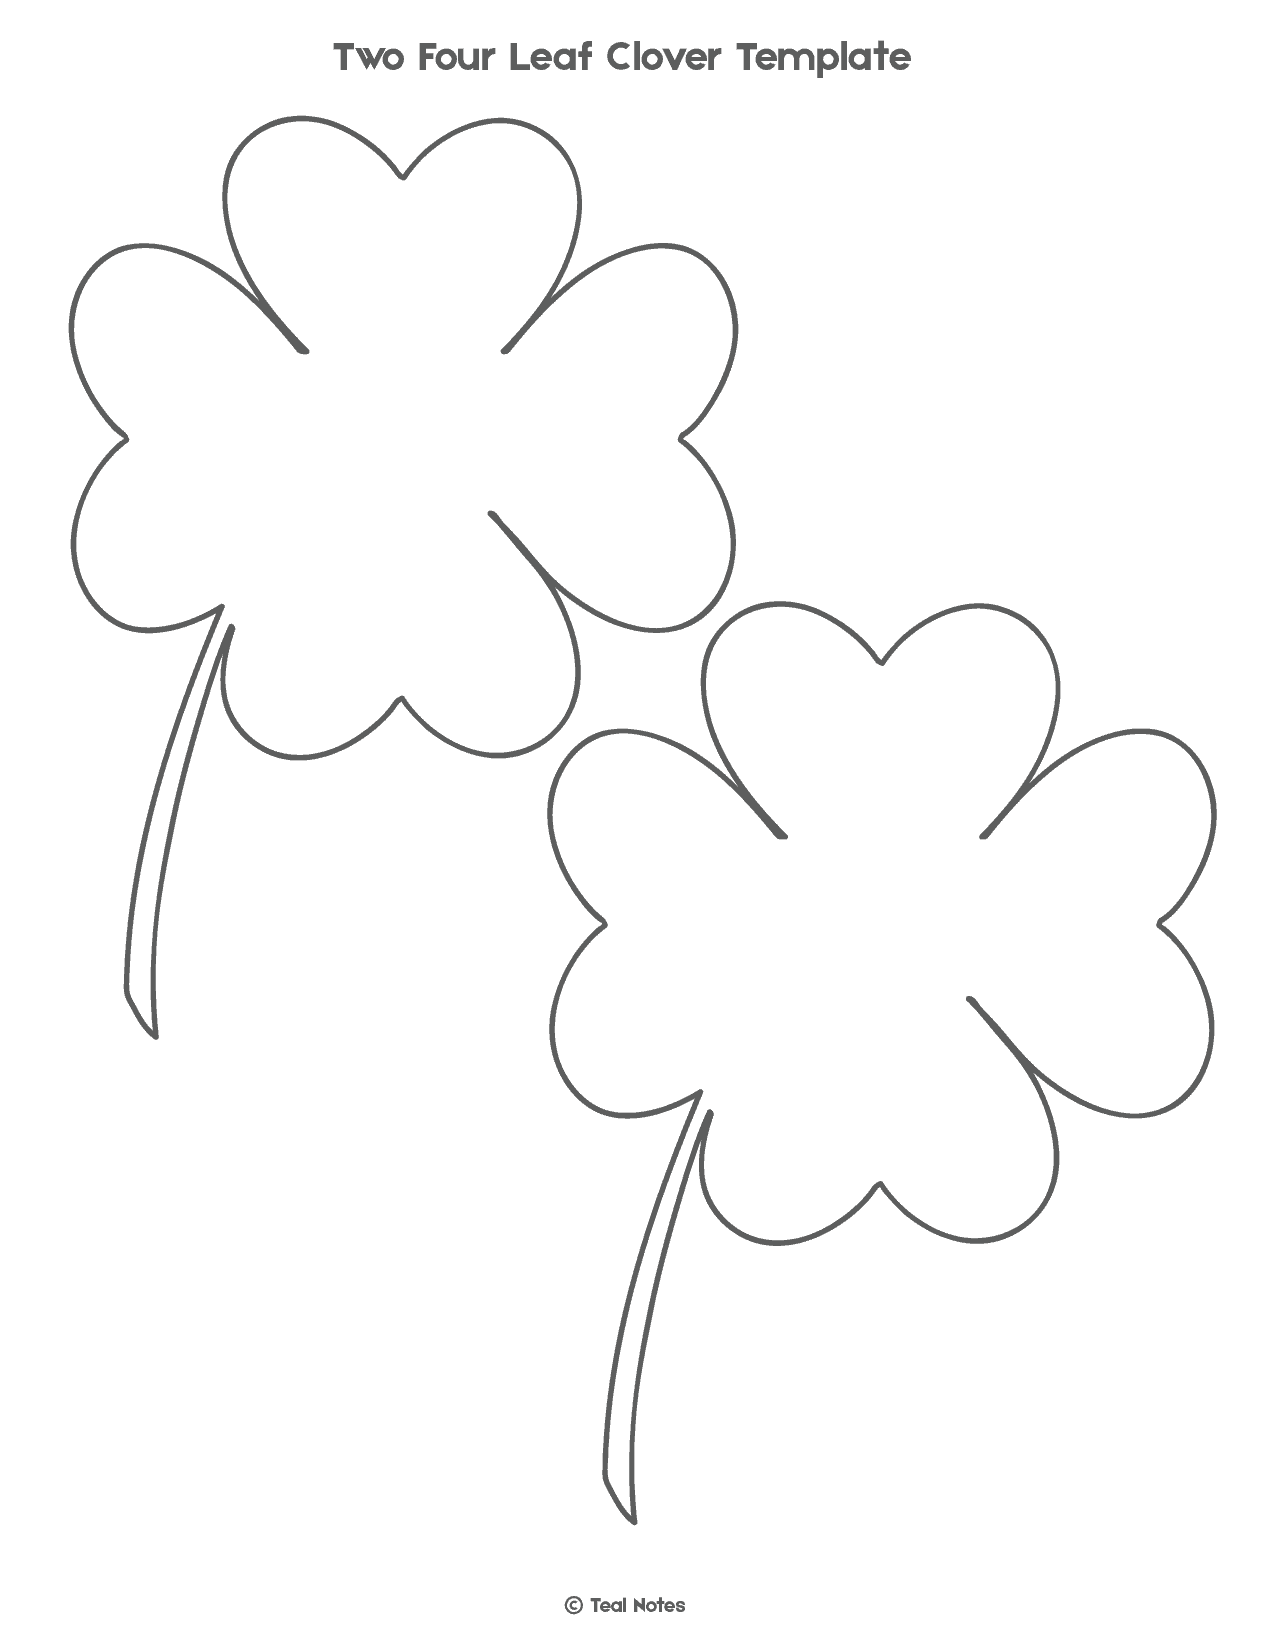 graphic relating to Printable Four Leaf Clovers referred to as 4 Leaf Clover Template: Totally free Shamrock Template Printable